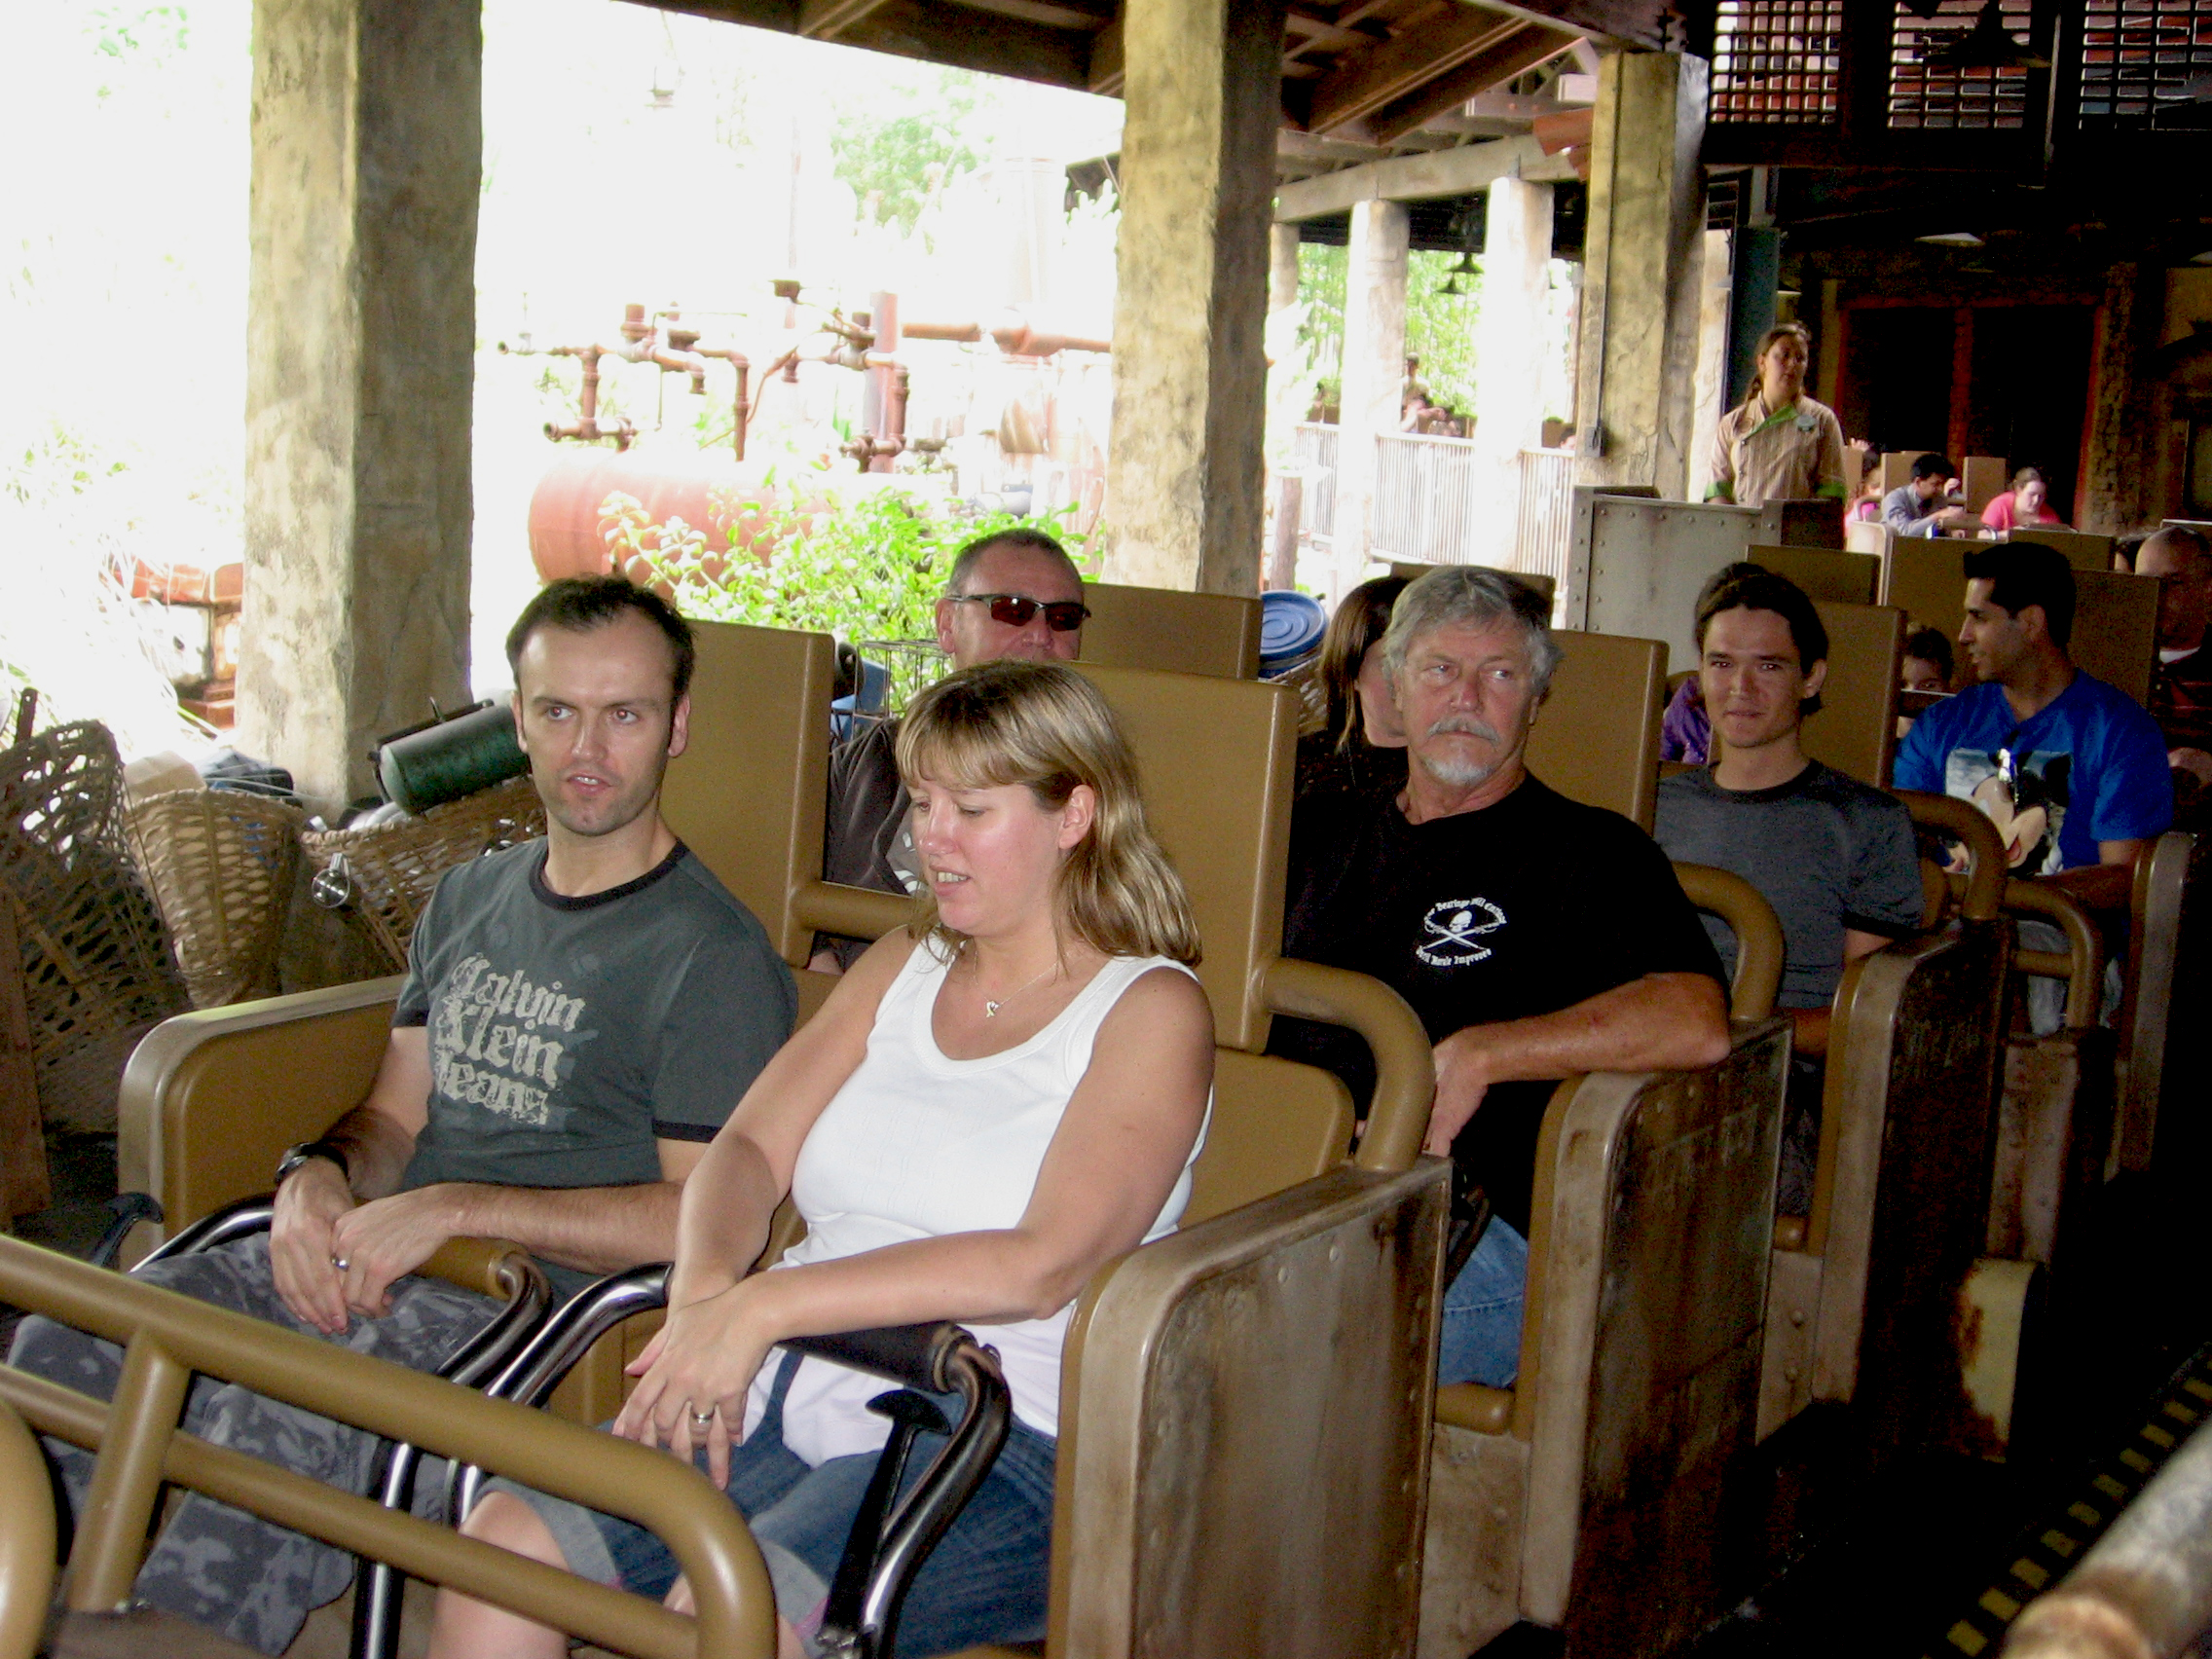 Expedition Everest ride cars